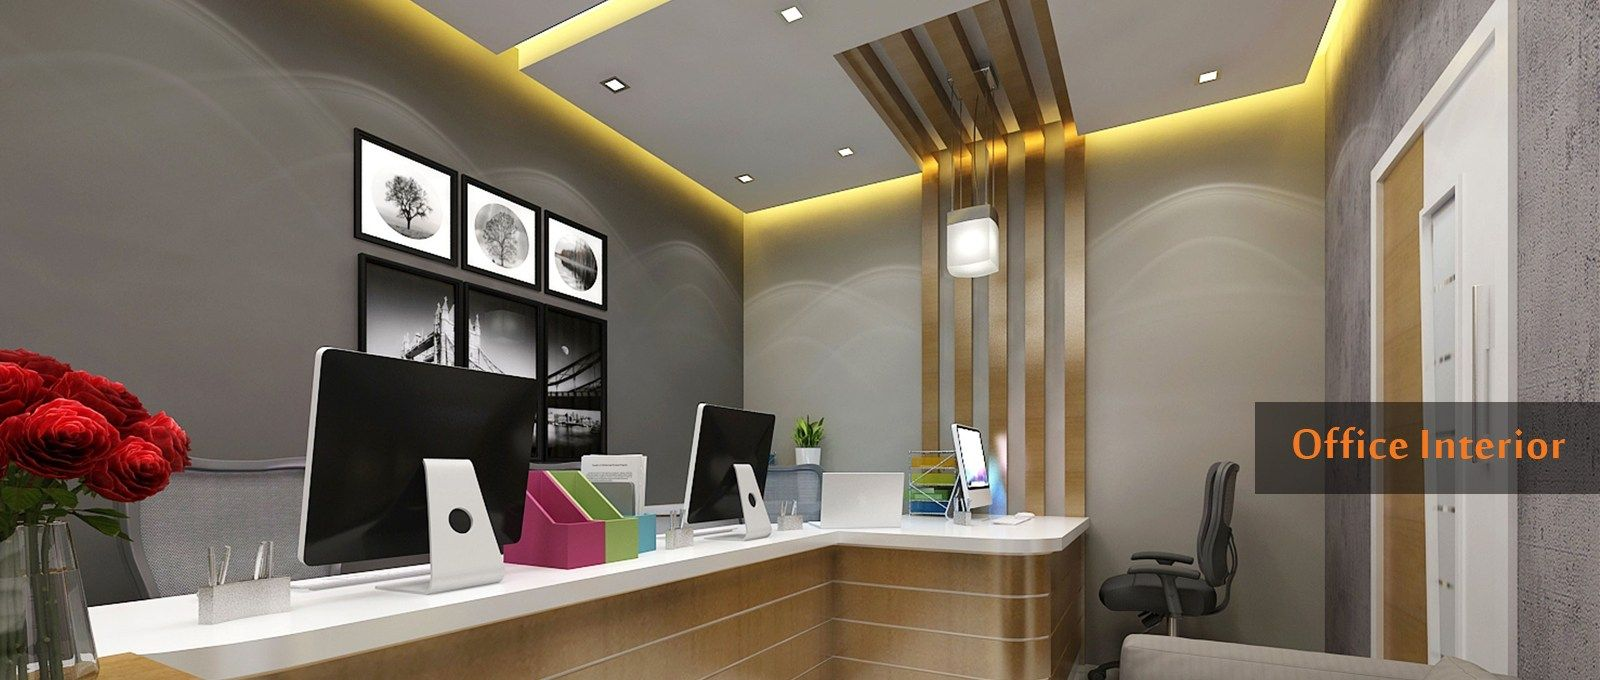 Good Interior Office Interior Decoration India Home Interior The Best In Top Interior Designers Decorators In Che With Images Interior Office Interior Design Best Interior